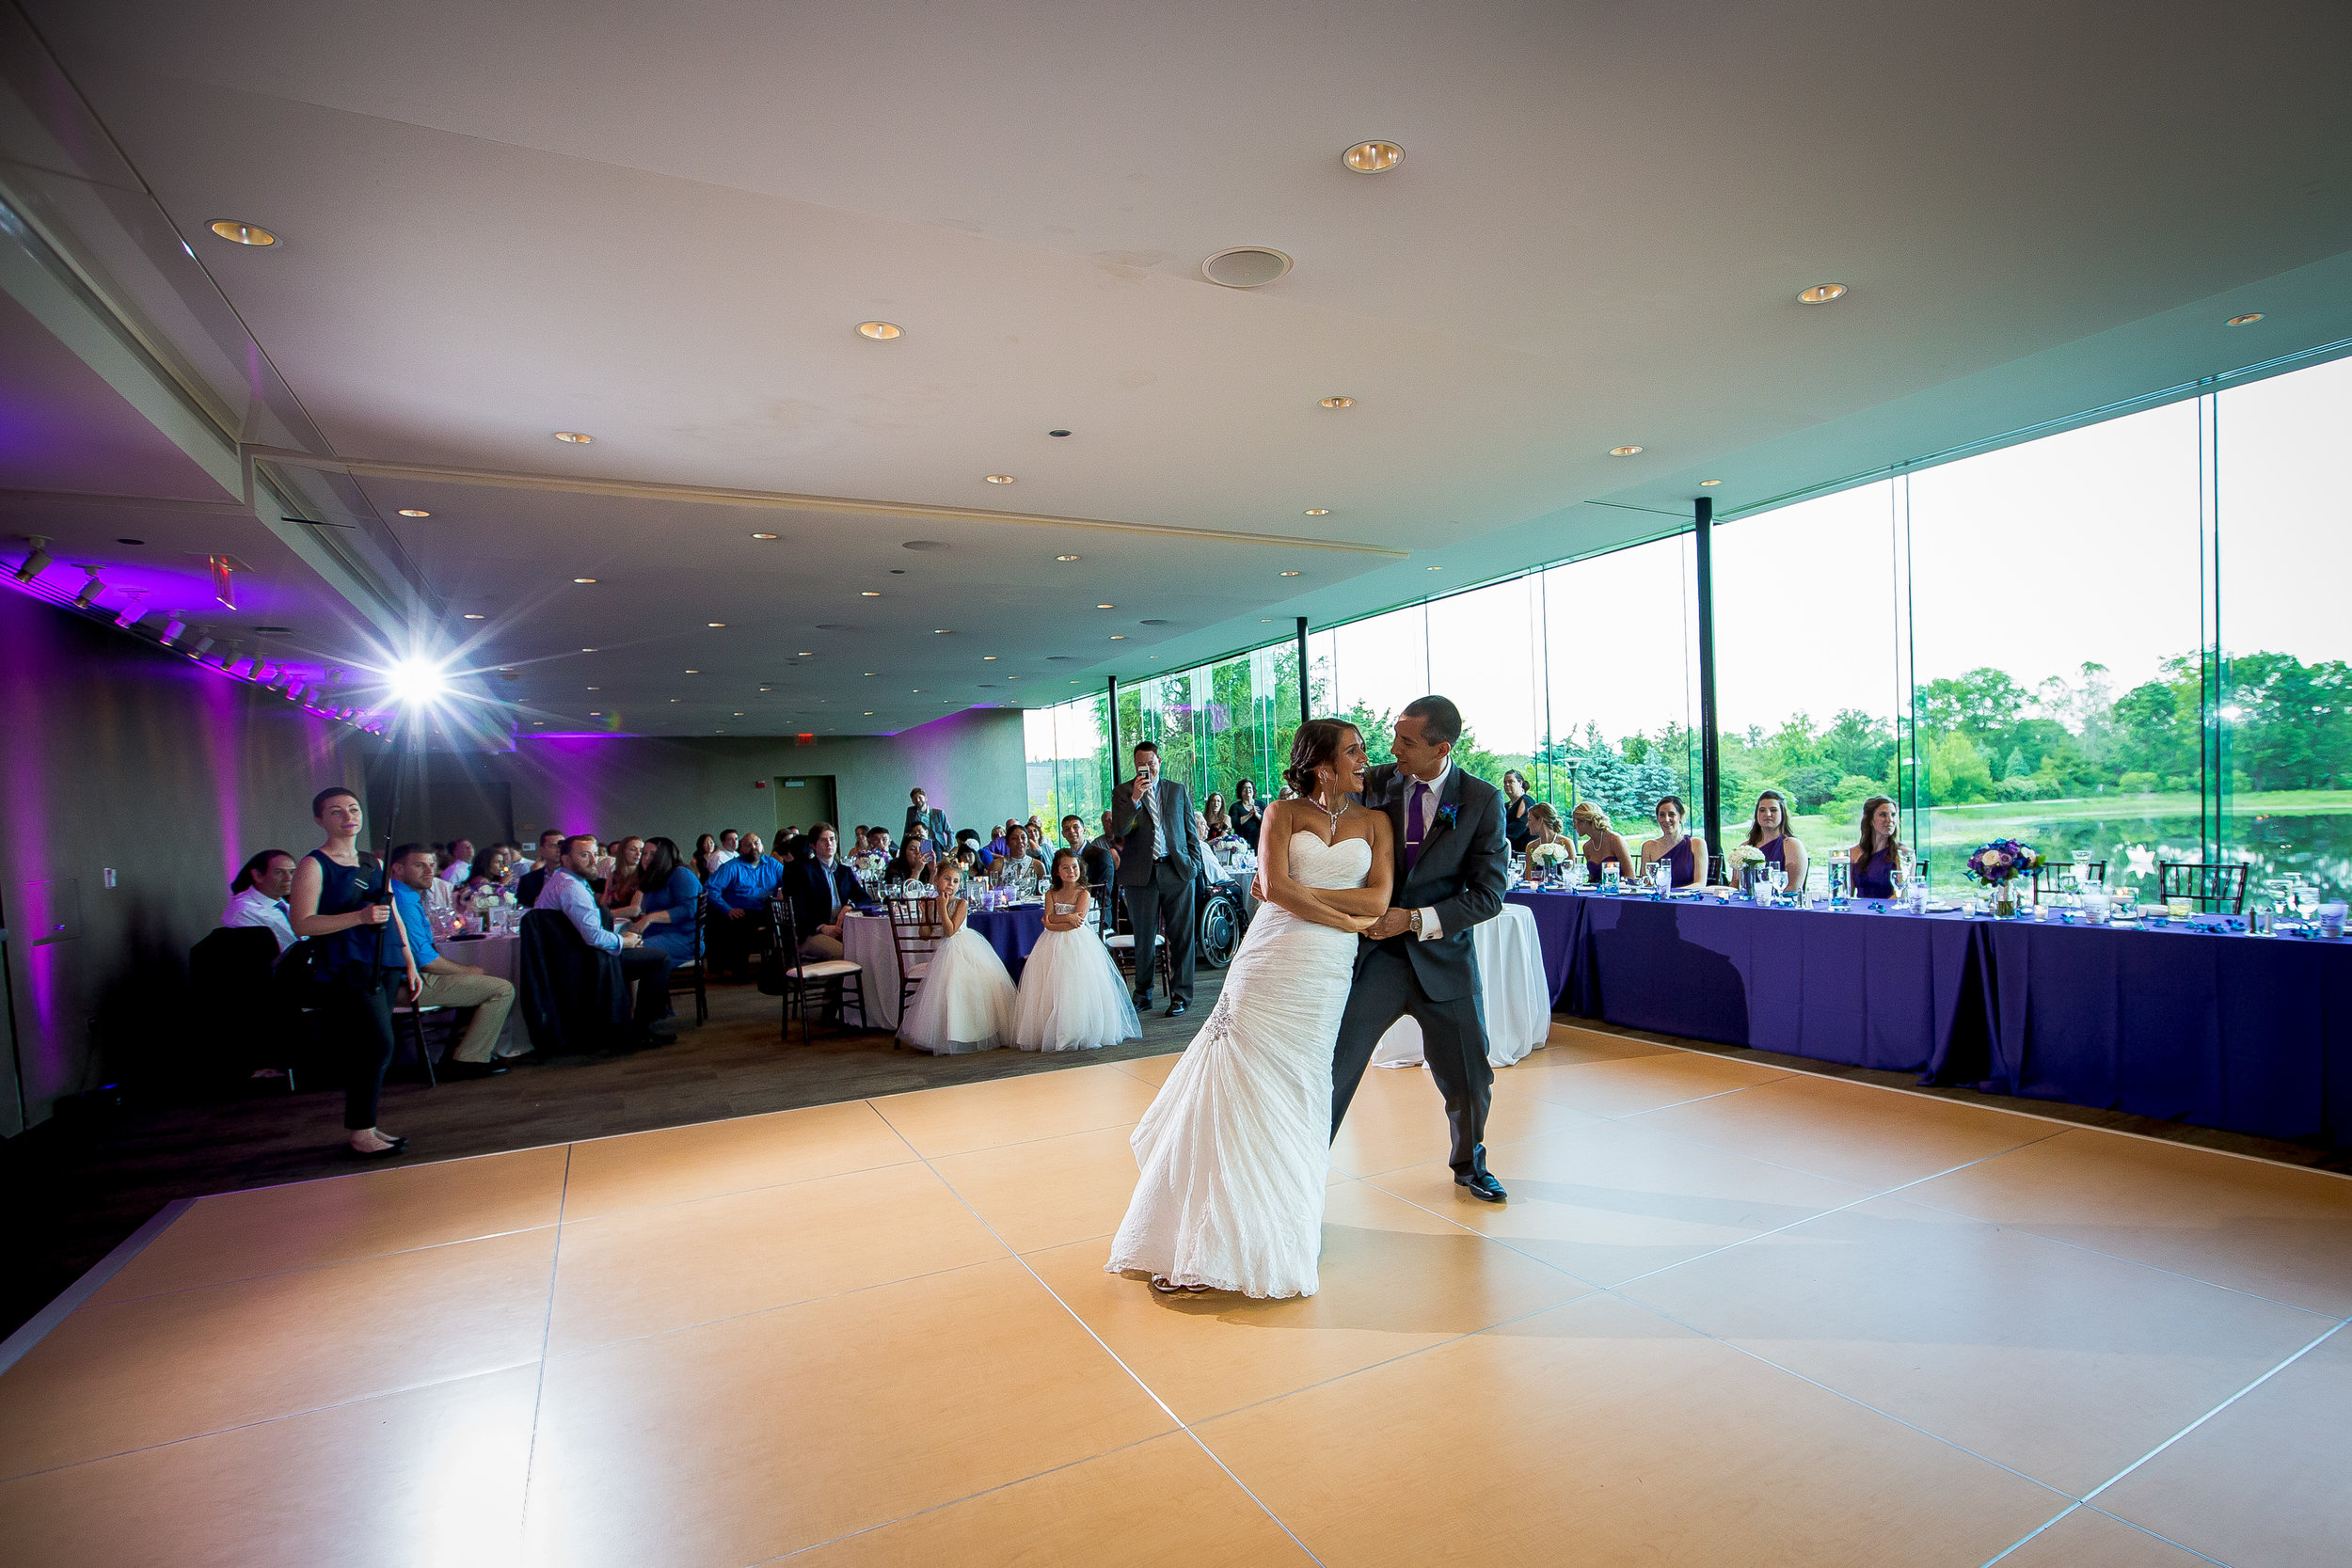 Bride and groom doing a dip move during their first dance